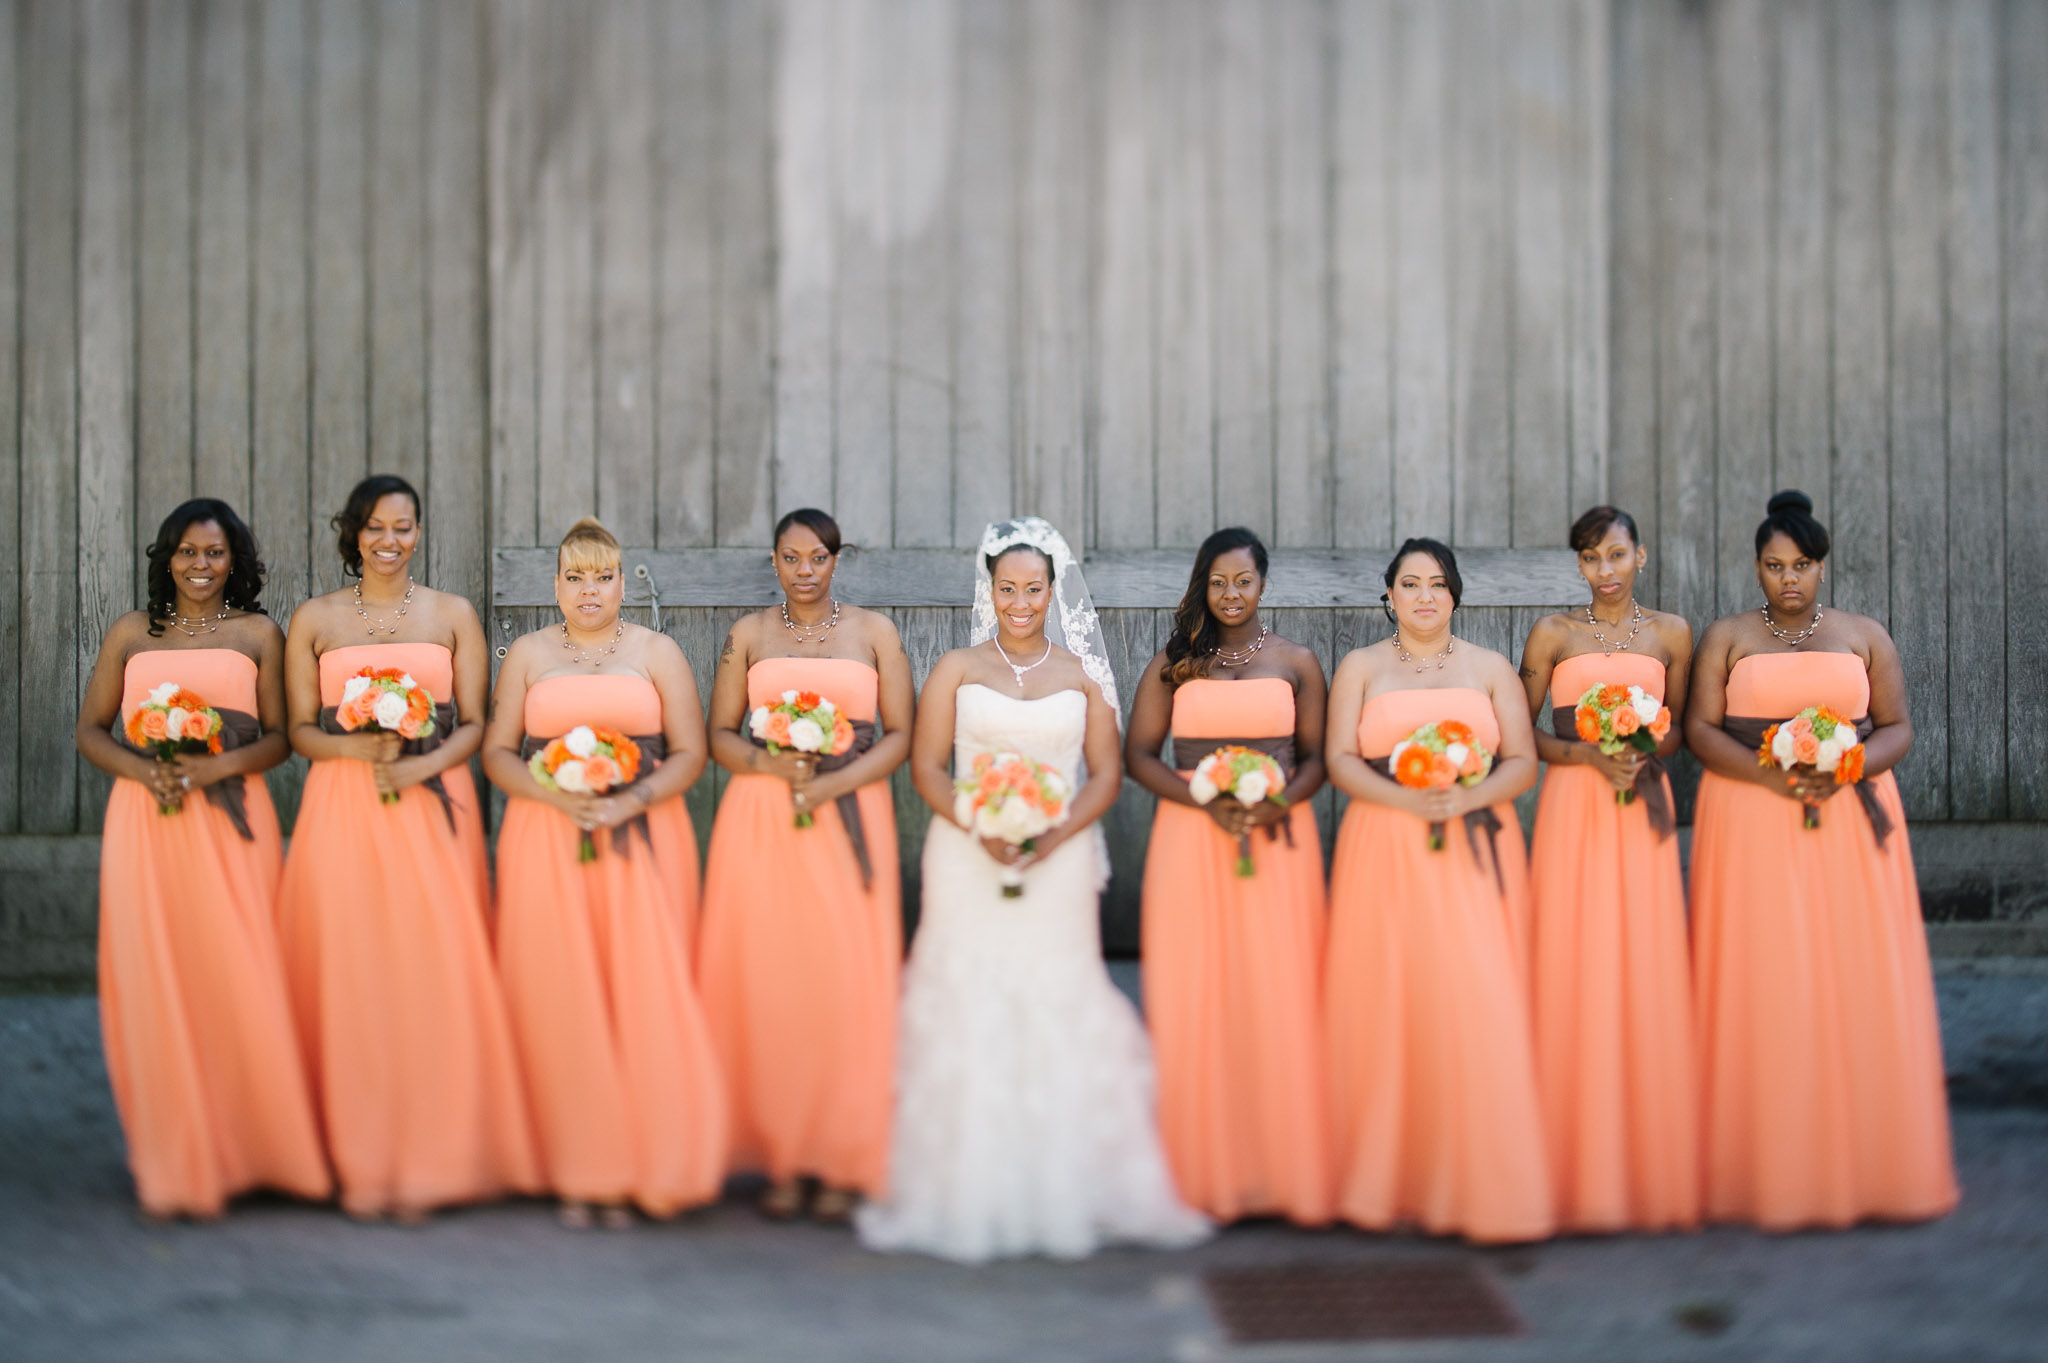 The Buffalo wedding bridal party post for a portrait featuring their peach dresses